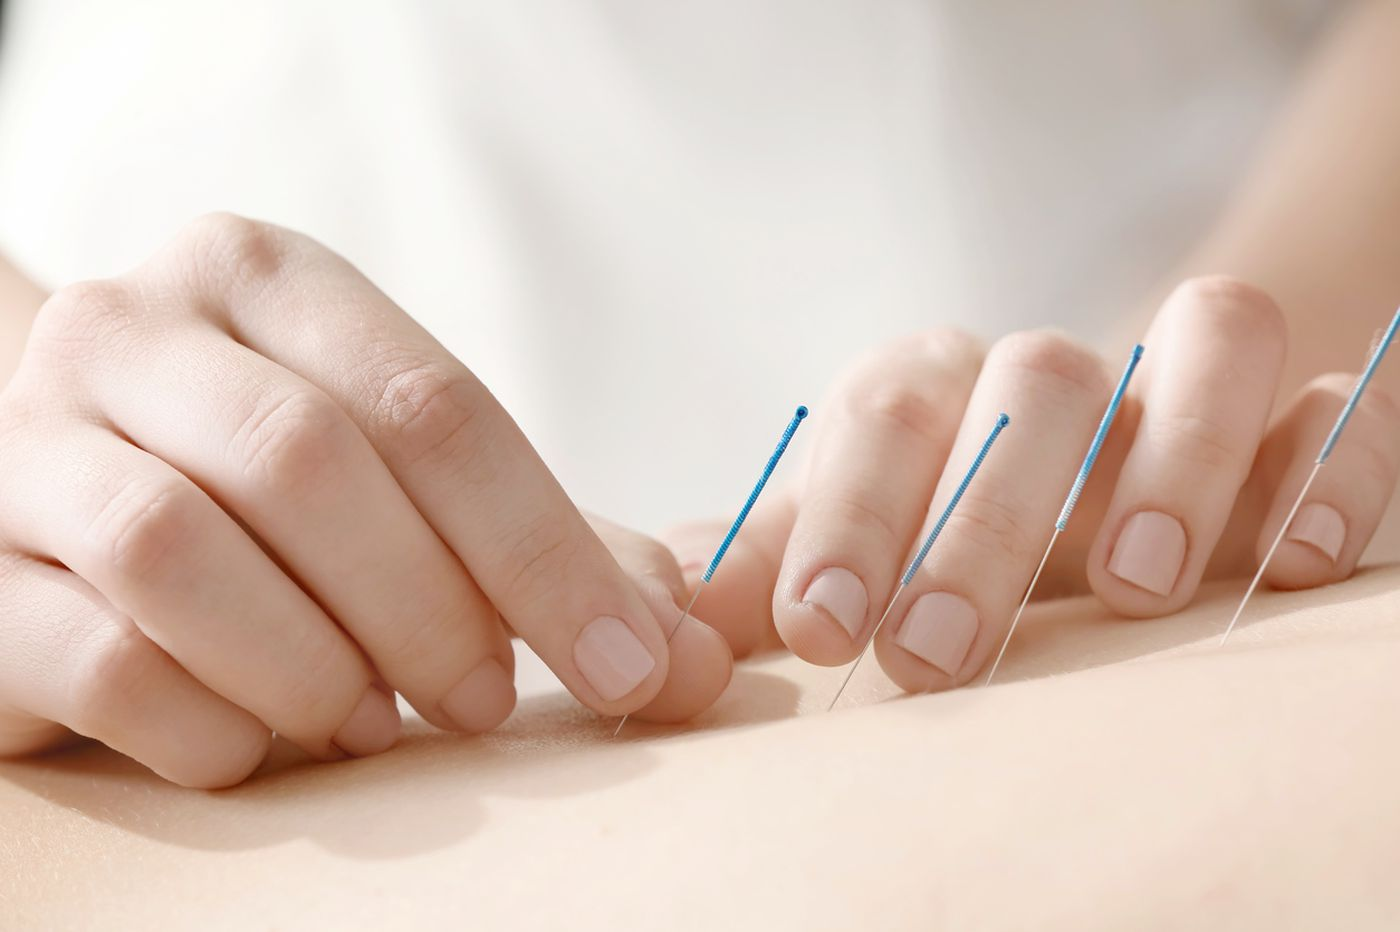 Acupuncture is a popular offering at fertility clinics, but it doesn't improve fertility, study says